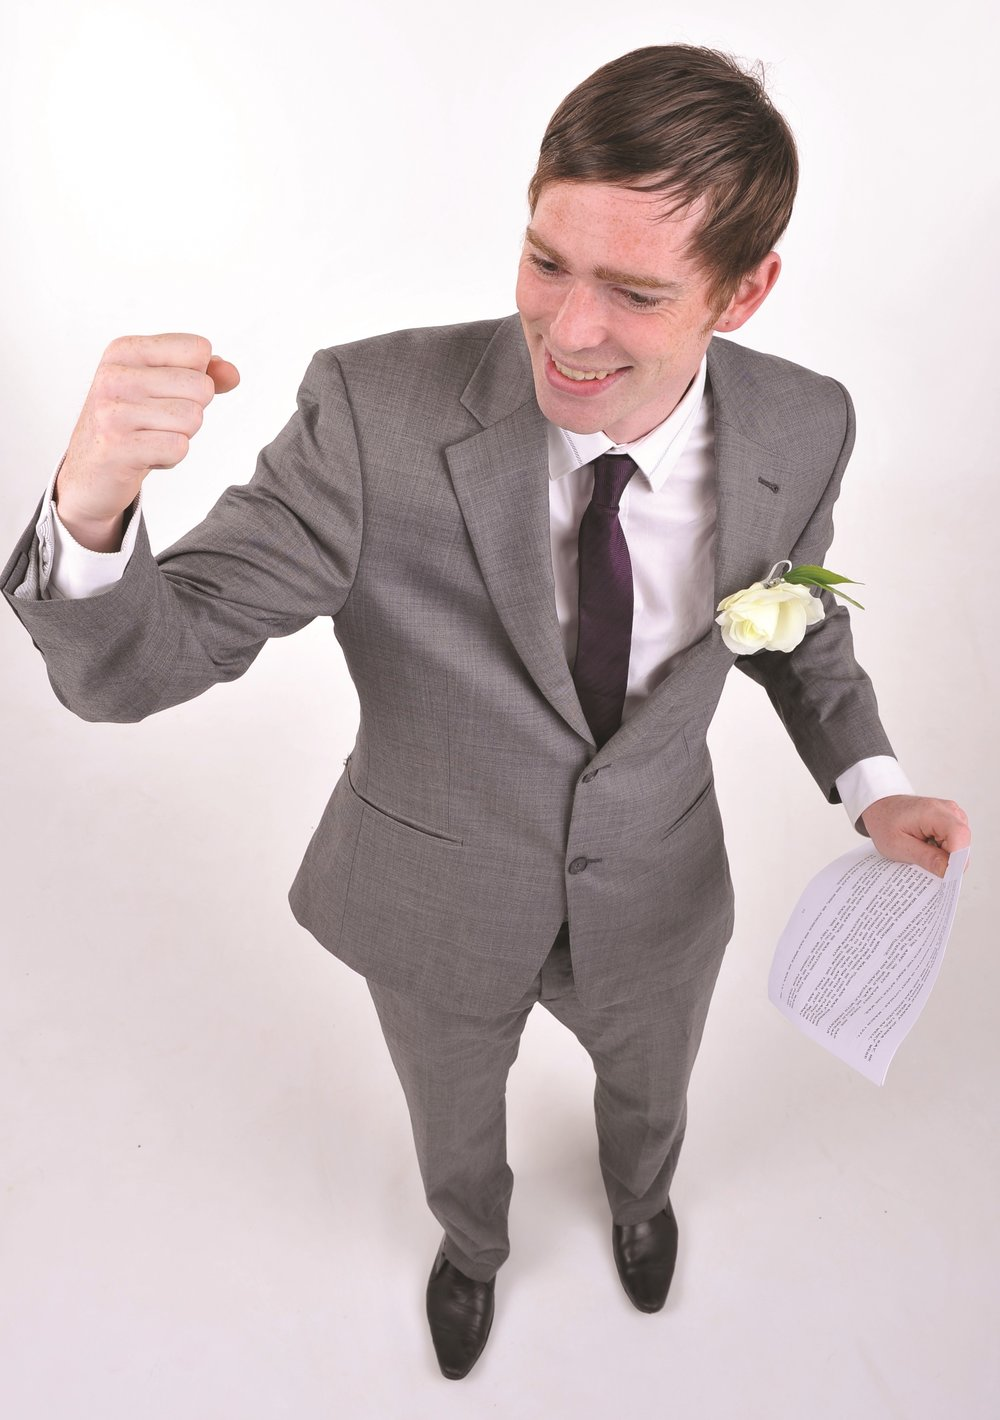 image-wedding-speech-success.jpg